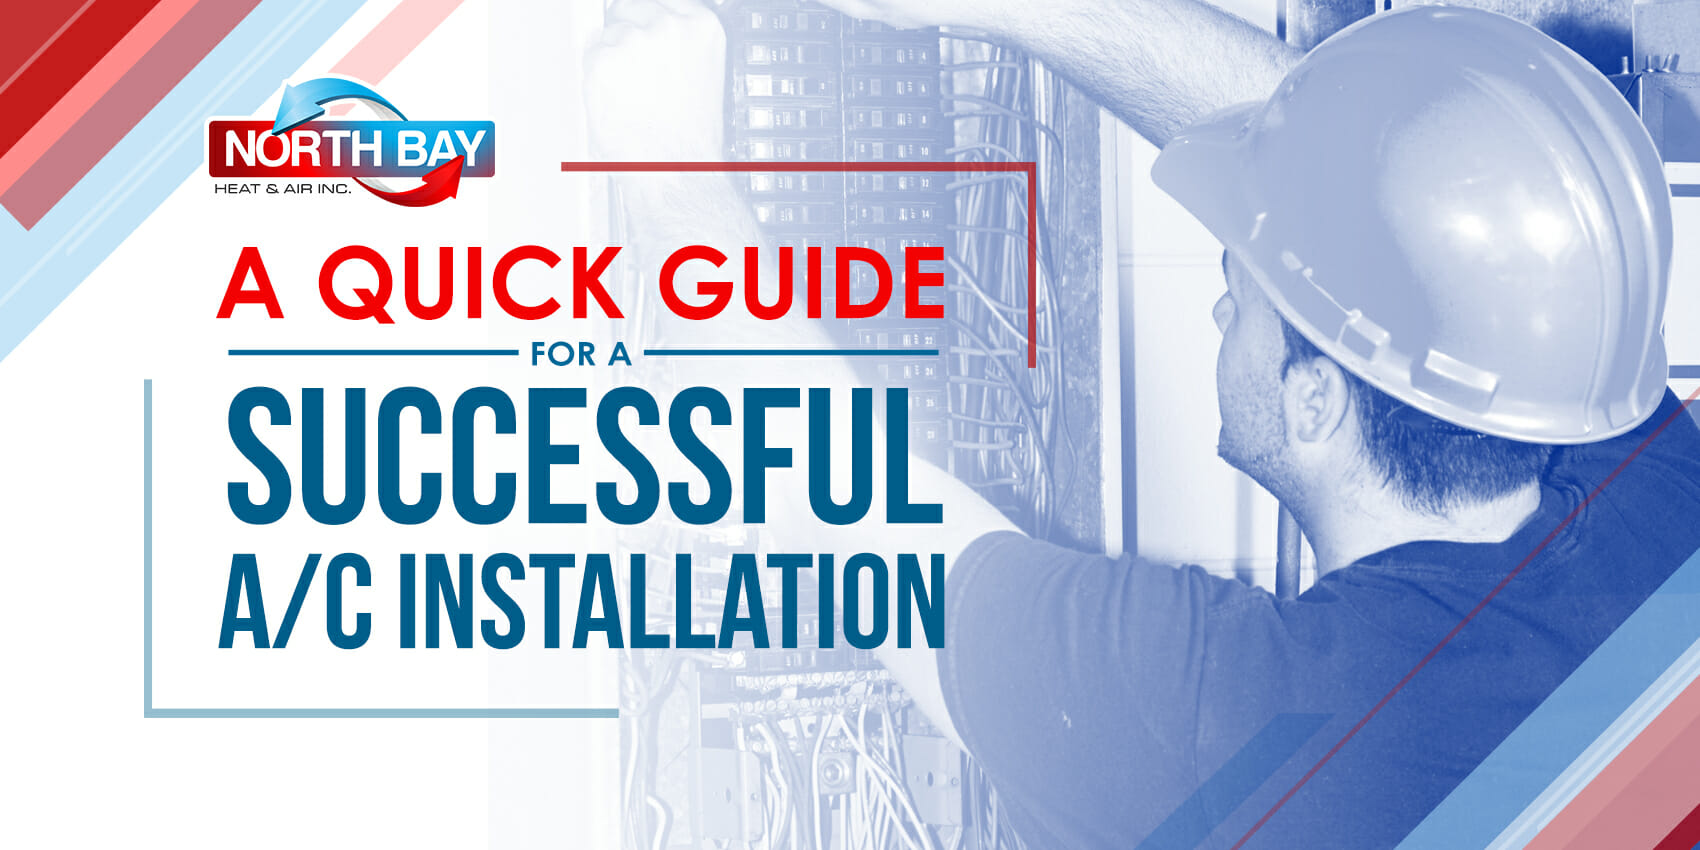 A Quick Guide For a Successful A/C Installation